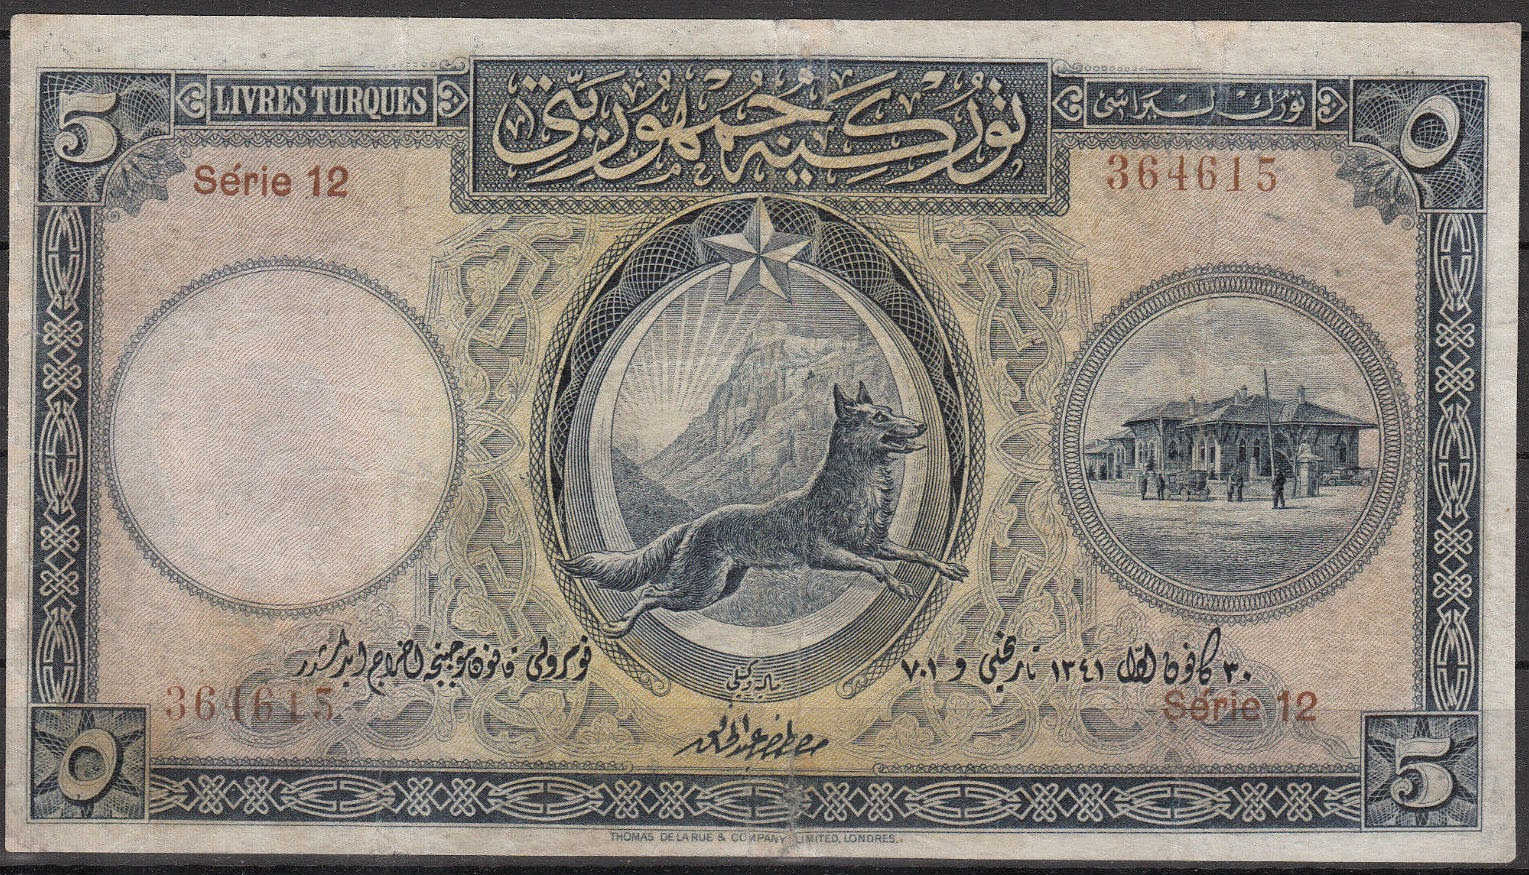 "Turkey Banknotes 5 Turkish Lira ""Livres Turques"" note 1926 Bounding wolf"